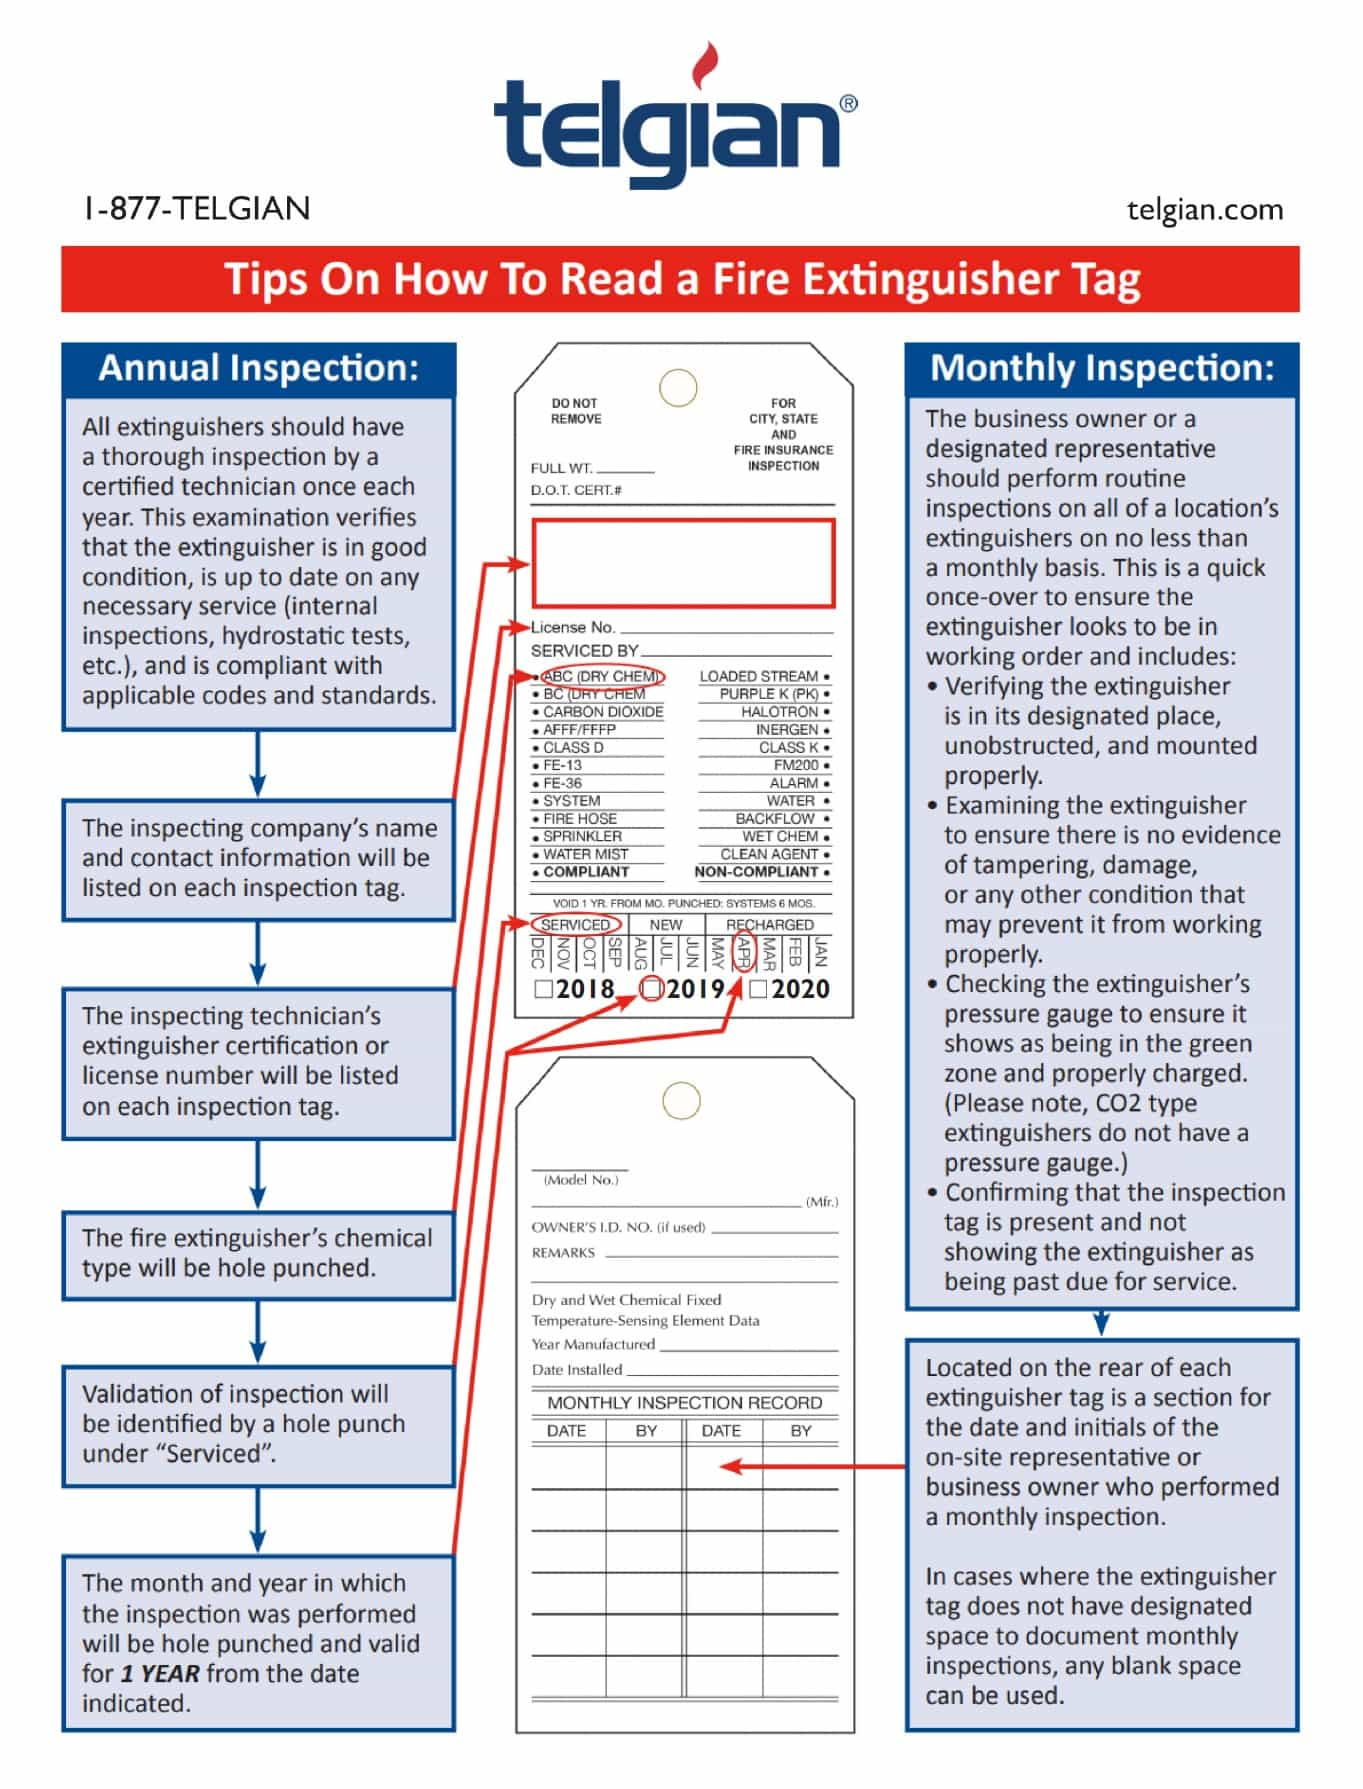 Diagram with instructions on how to read a fire extinguisher tag